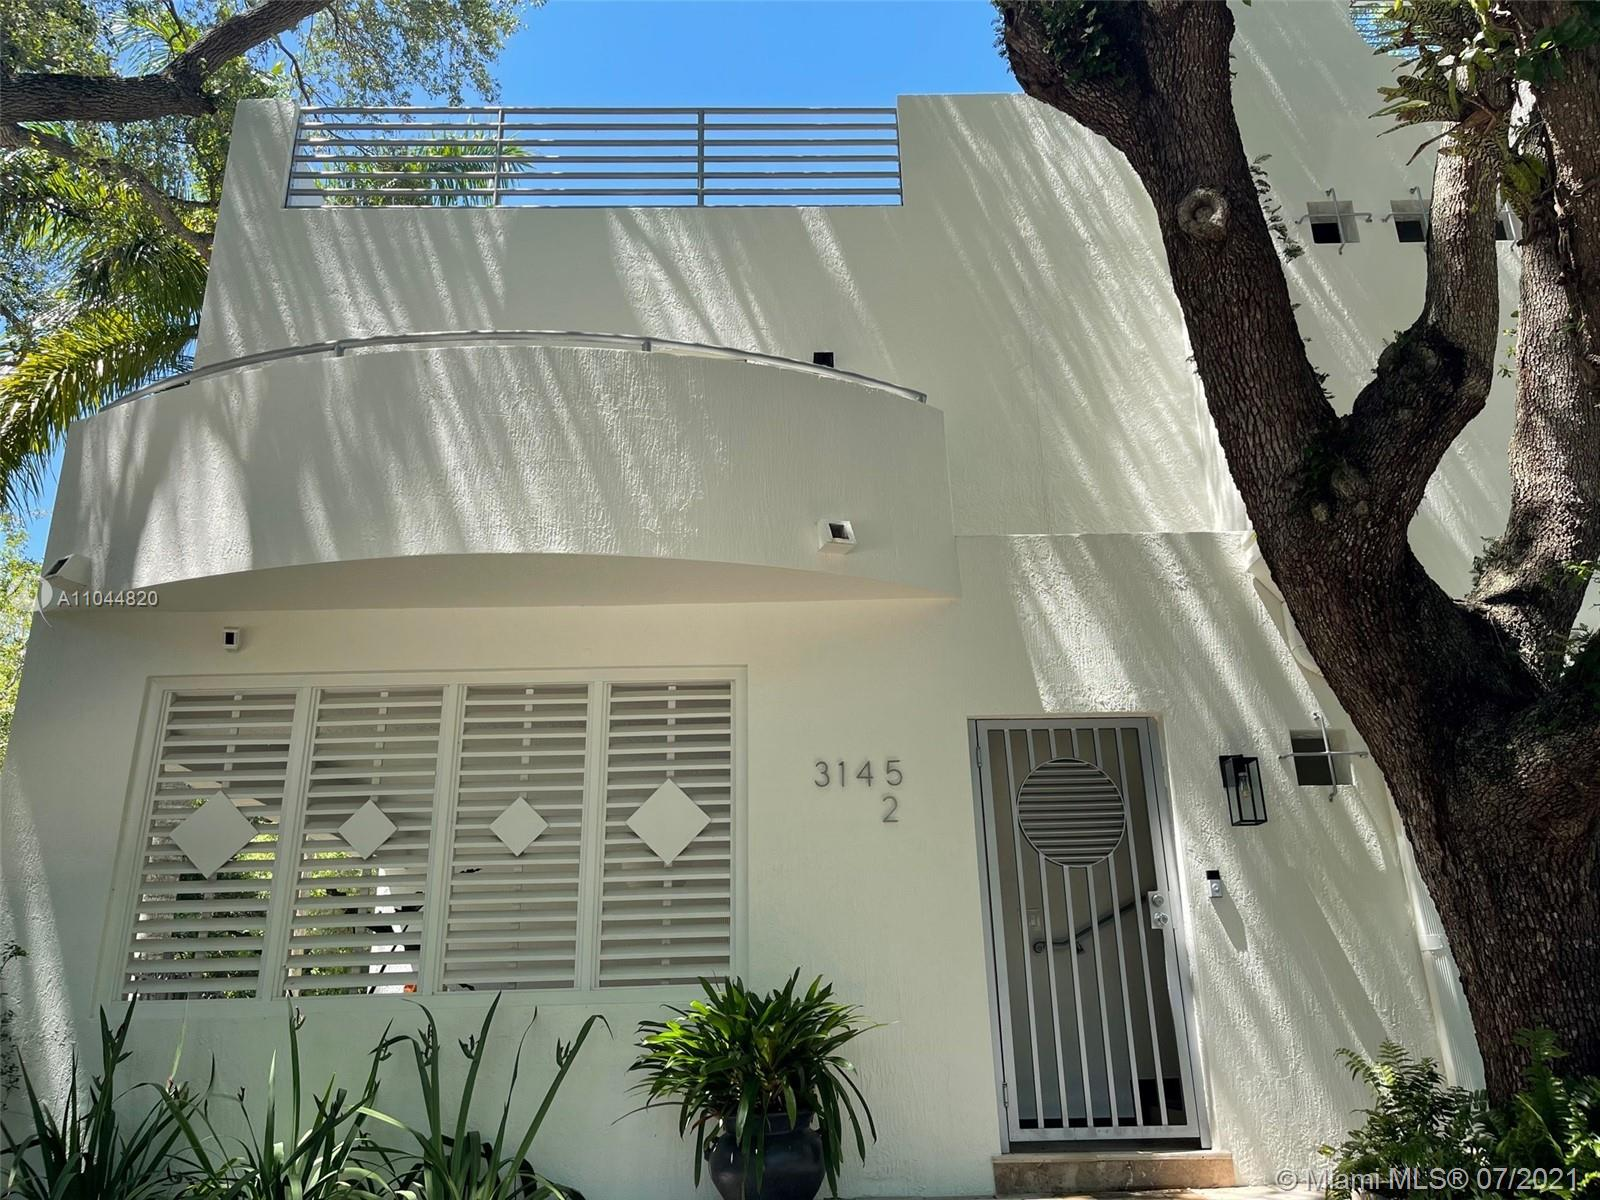 Welcome home to the best the Grove has to offer. This is the upstairs condo of a two unit condo building but it looks and feels like a single family home. This second floor smart home is nestled in the trees with a beautiful view down Gifford Lane. The well-appointed 2 bed/2 bath offers an updated kitchen with Subzero/Viking/Thermador appliances and brand new full size smart washer/dryer. The master comes with a spacious in-suite bath with double vanity, spa tub and built-in walk-in closet. Two gated parking spaces and Ring security provides peace and serenity in Miami's most sought after family friendly neighborhood. Enjoy the Grove lifestyle. Walk to dinner, shops and Miami's best schools.